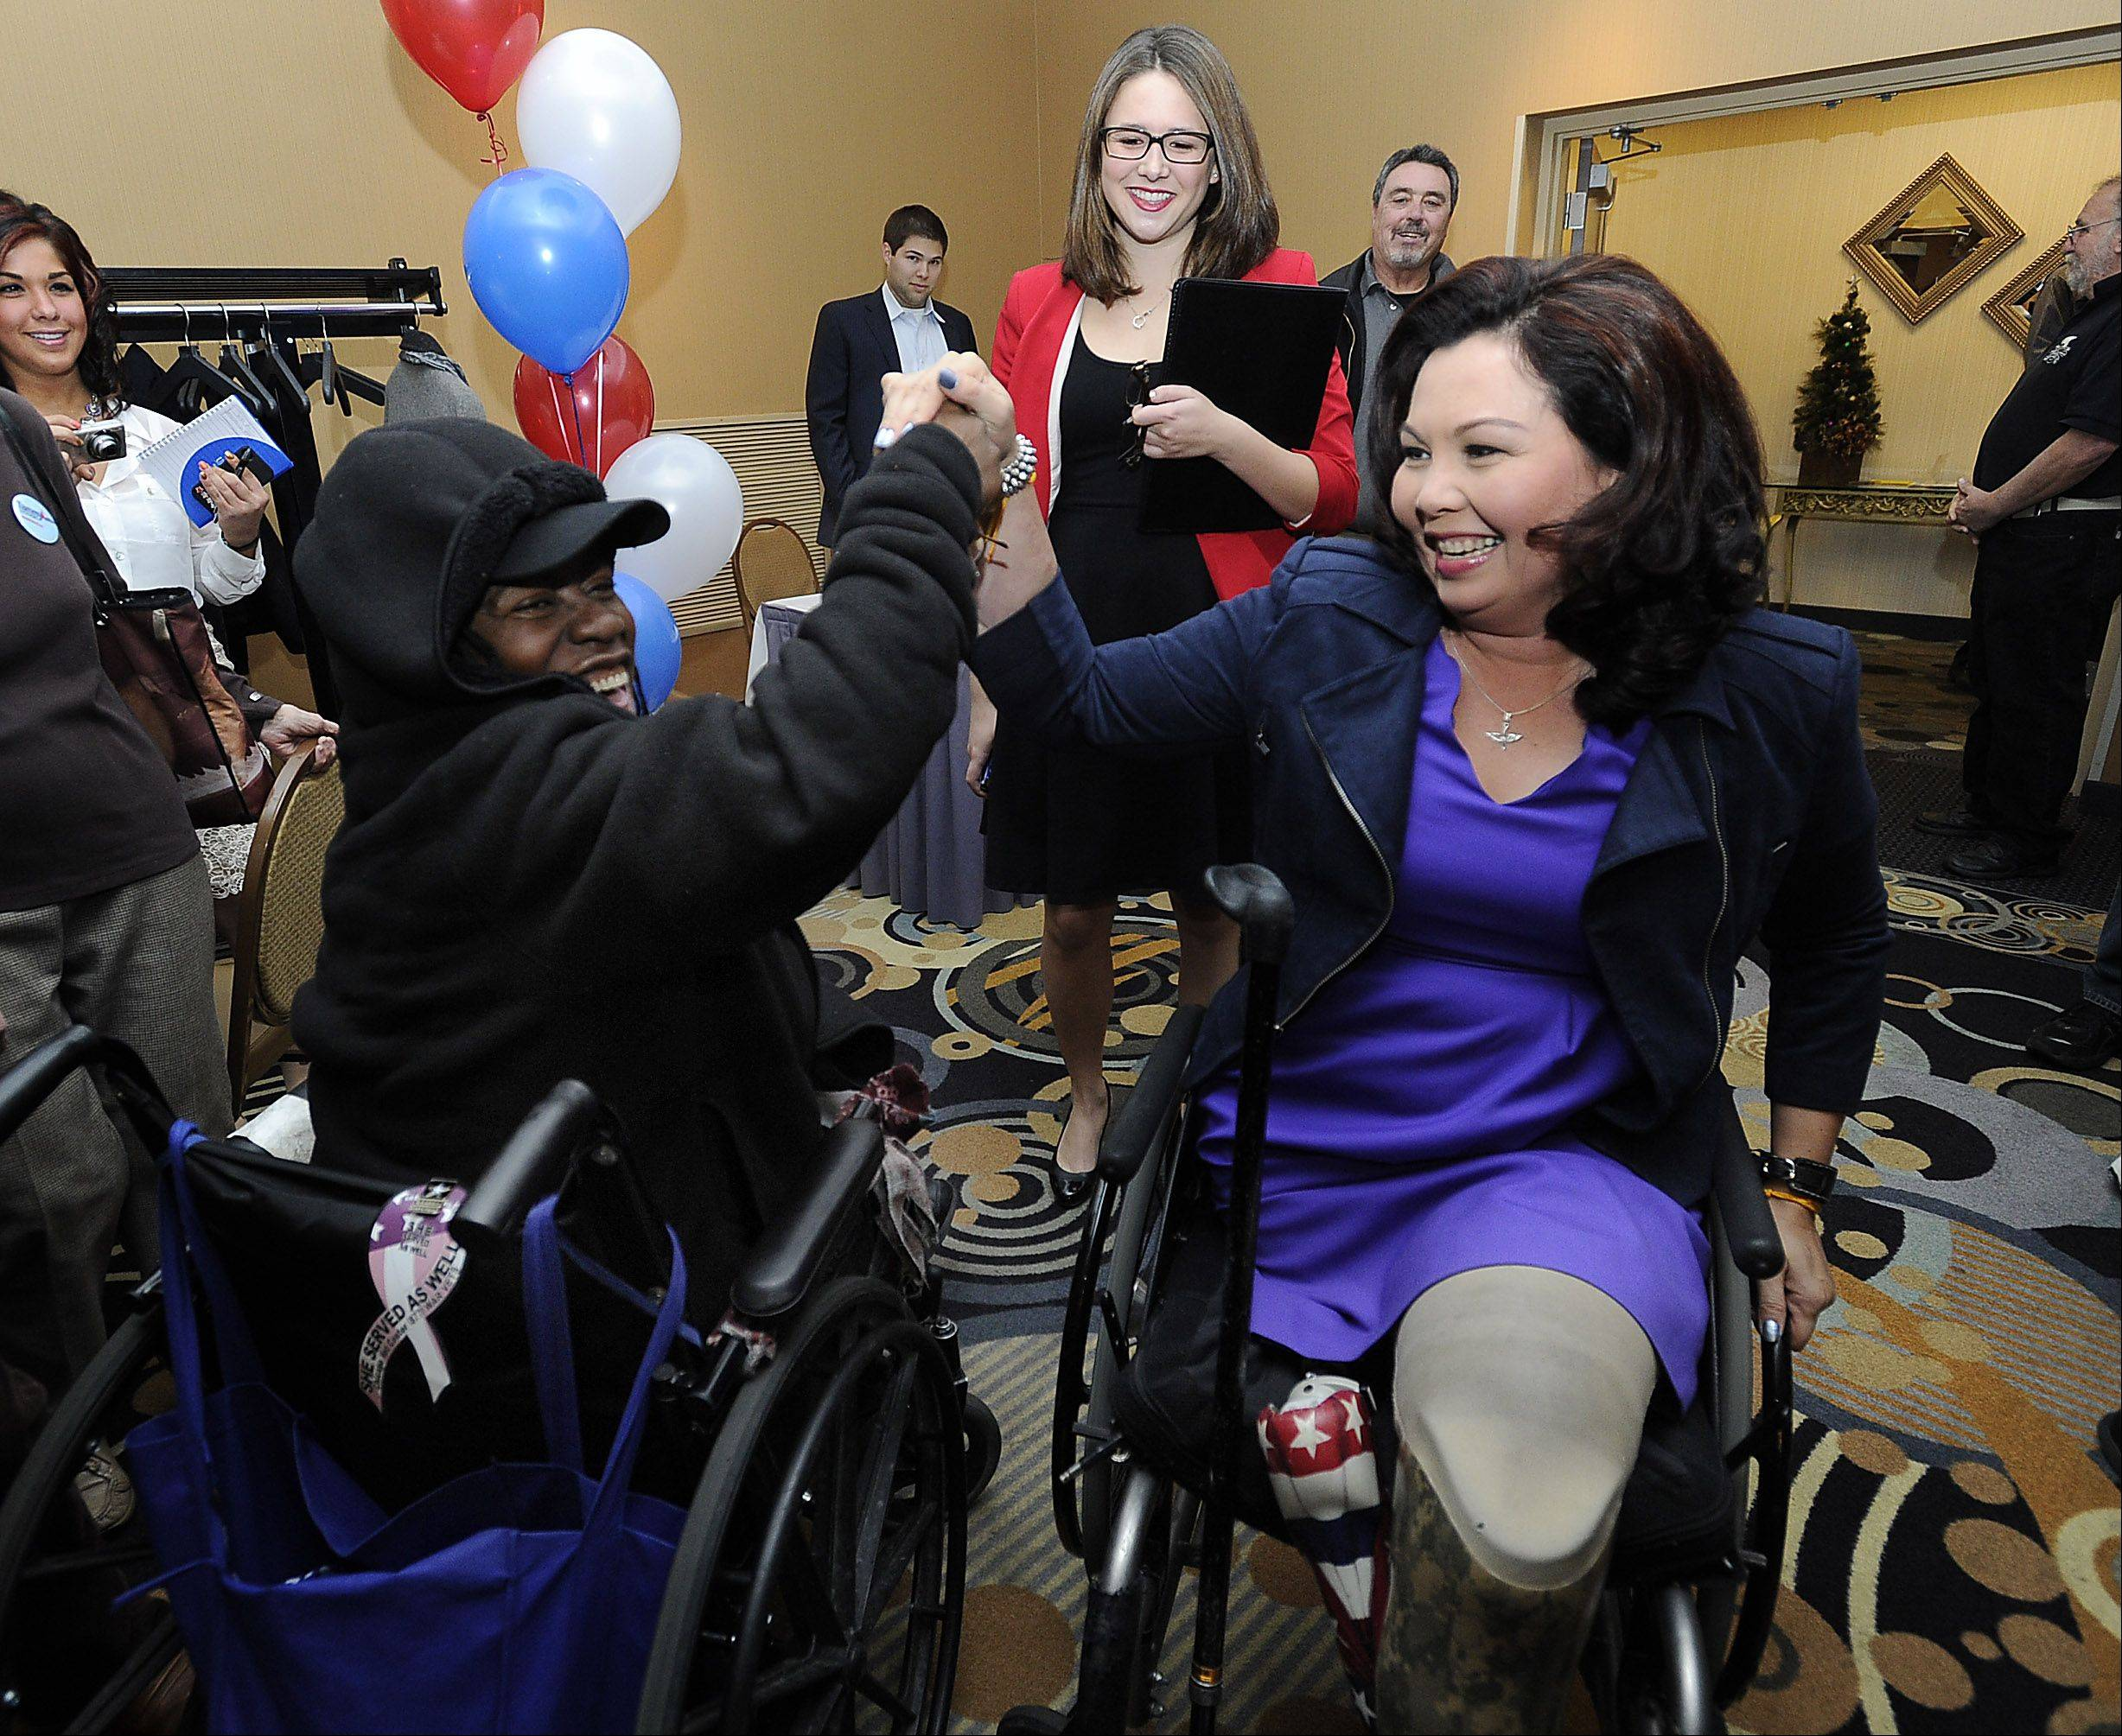 Mark Welsh/mwelsh@dailyherald.com Tammy Duckworth enters her campaign headquarters at the Holiday Inn in Elk Grove Village to the cheers and a best wishes from fellow veteran Octavia Mitchell of Chicago as she prepares to talk to the media.